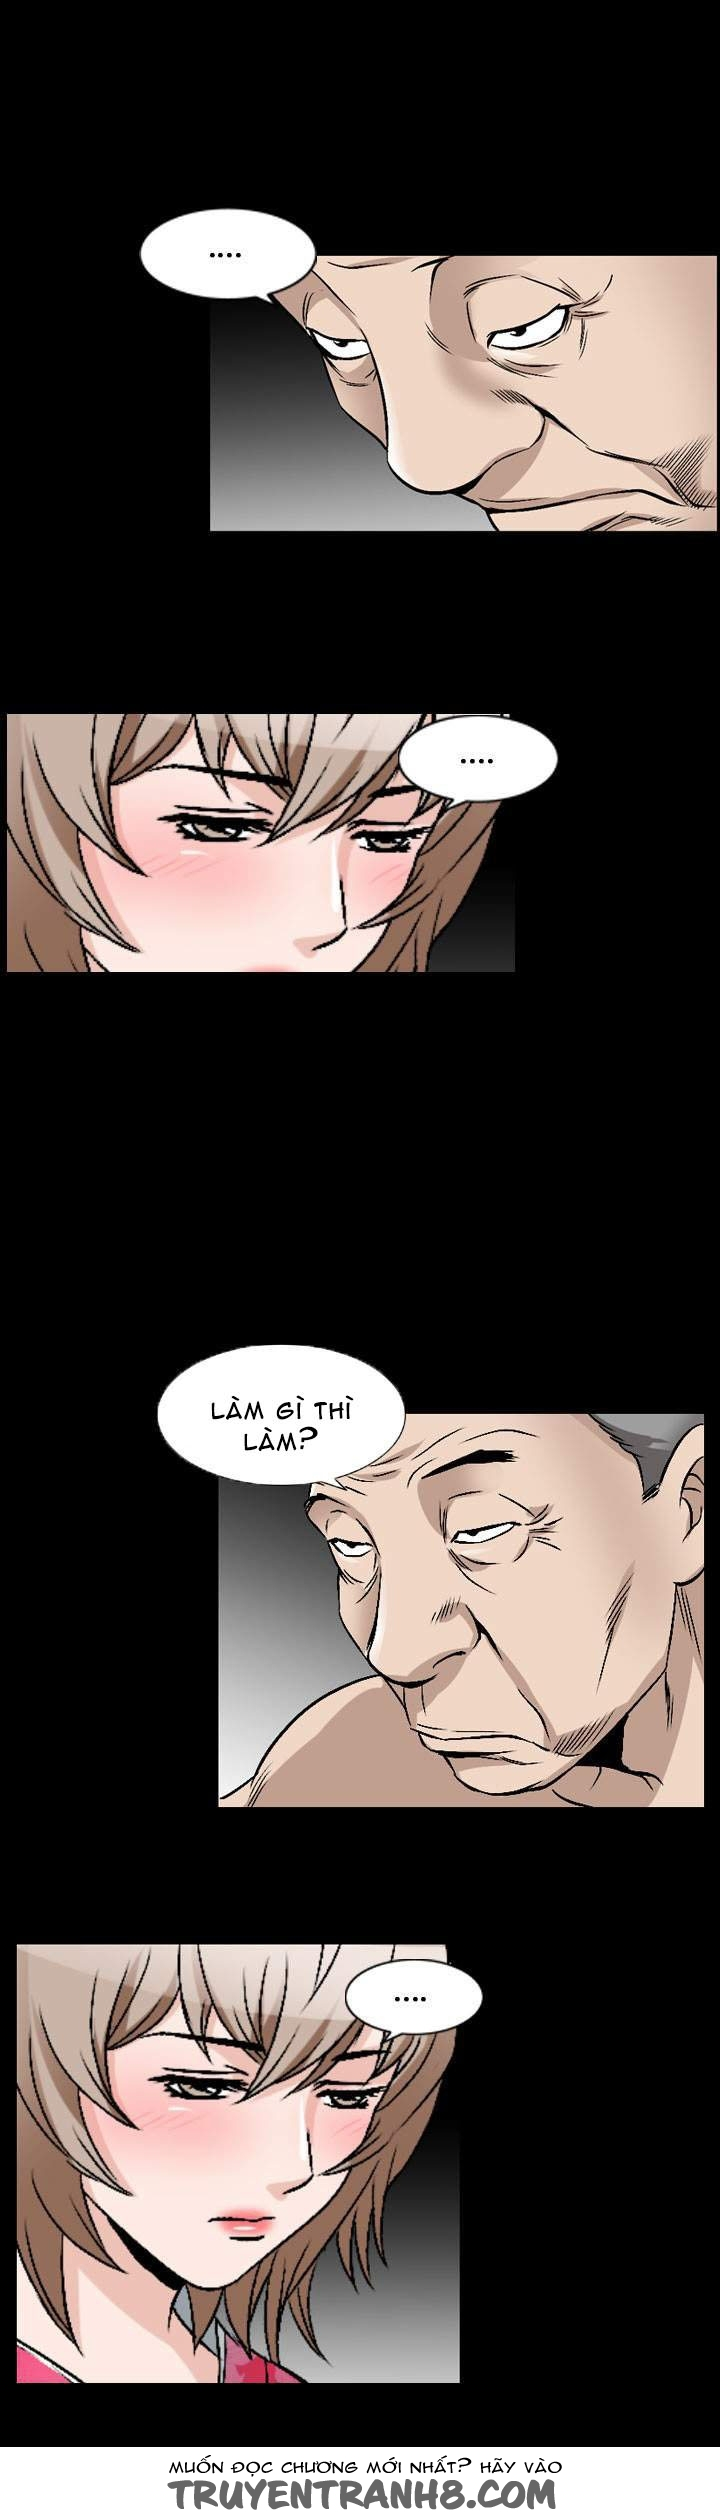 The Taste Of The Hand Chapter 71 - Trang 18